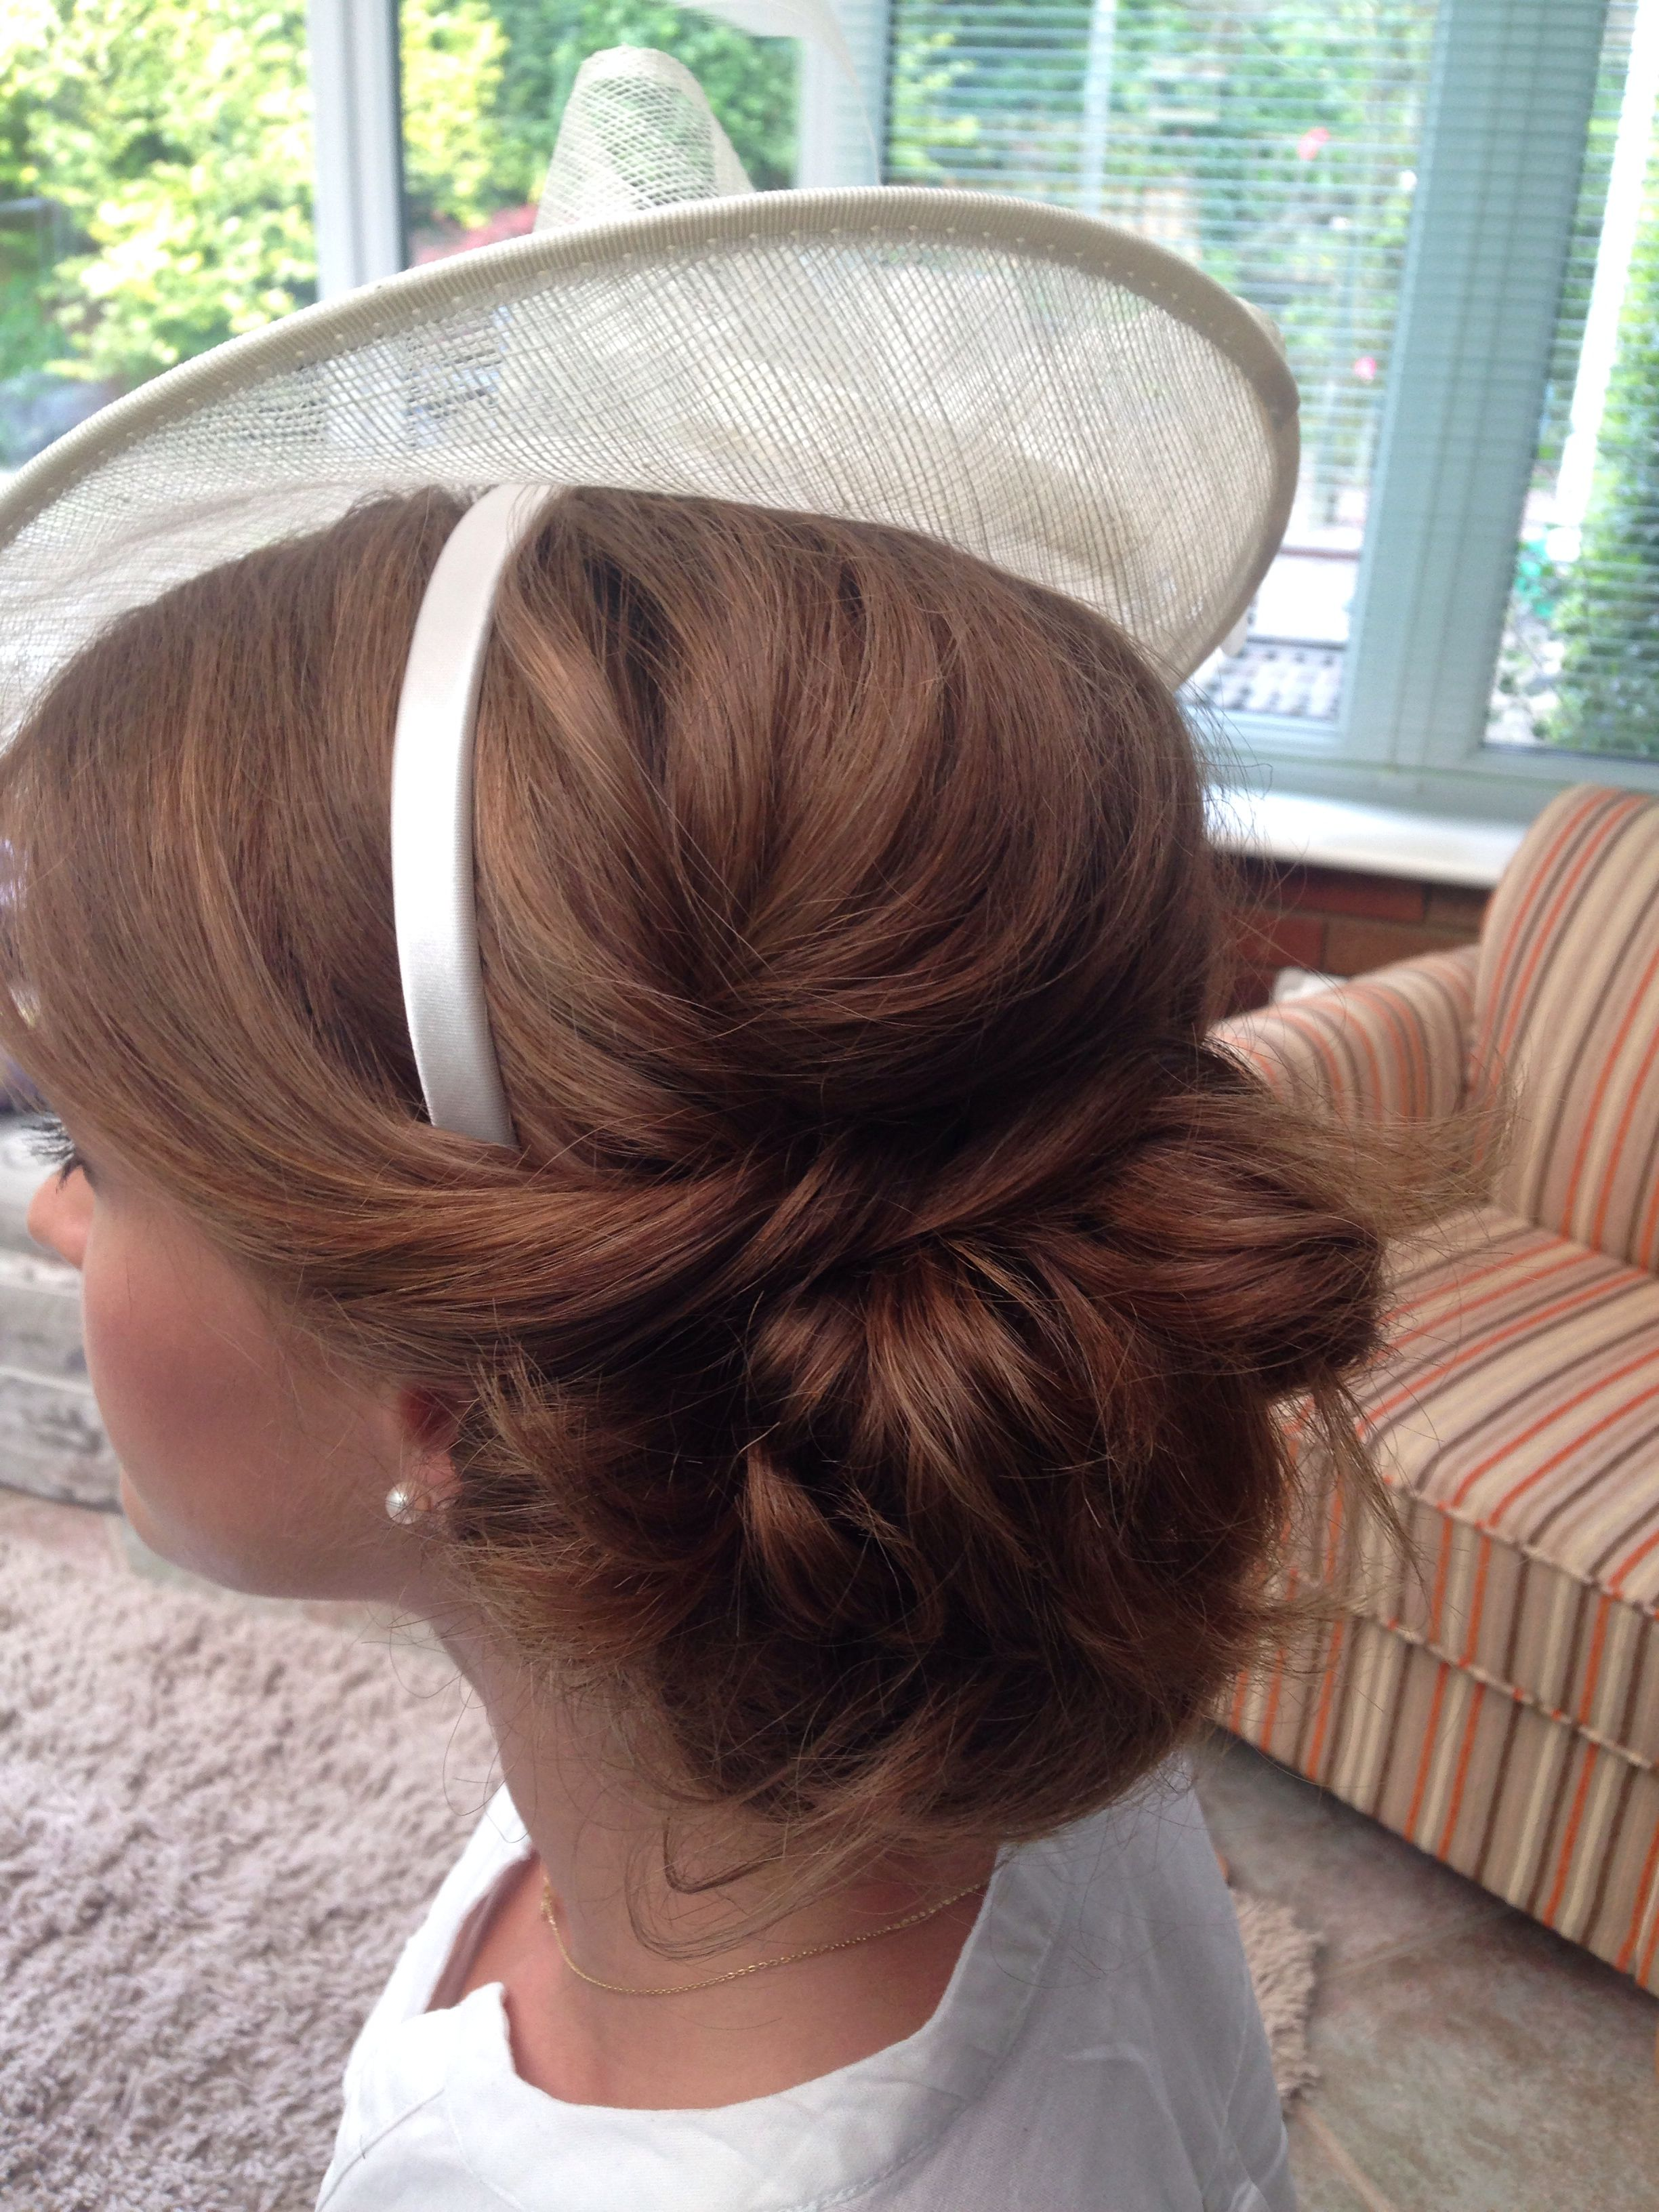 messy low bun sat slightly to the side - twisting sections